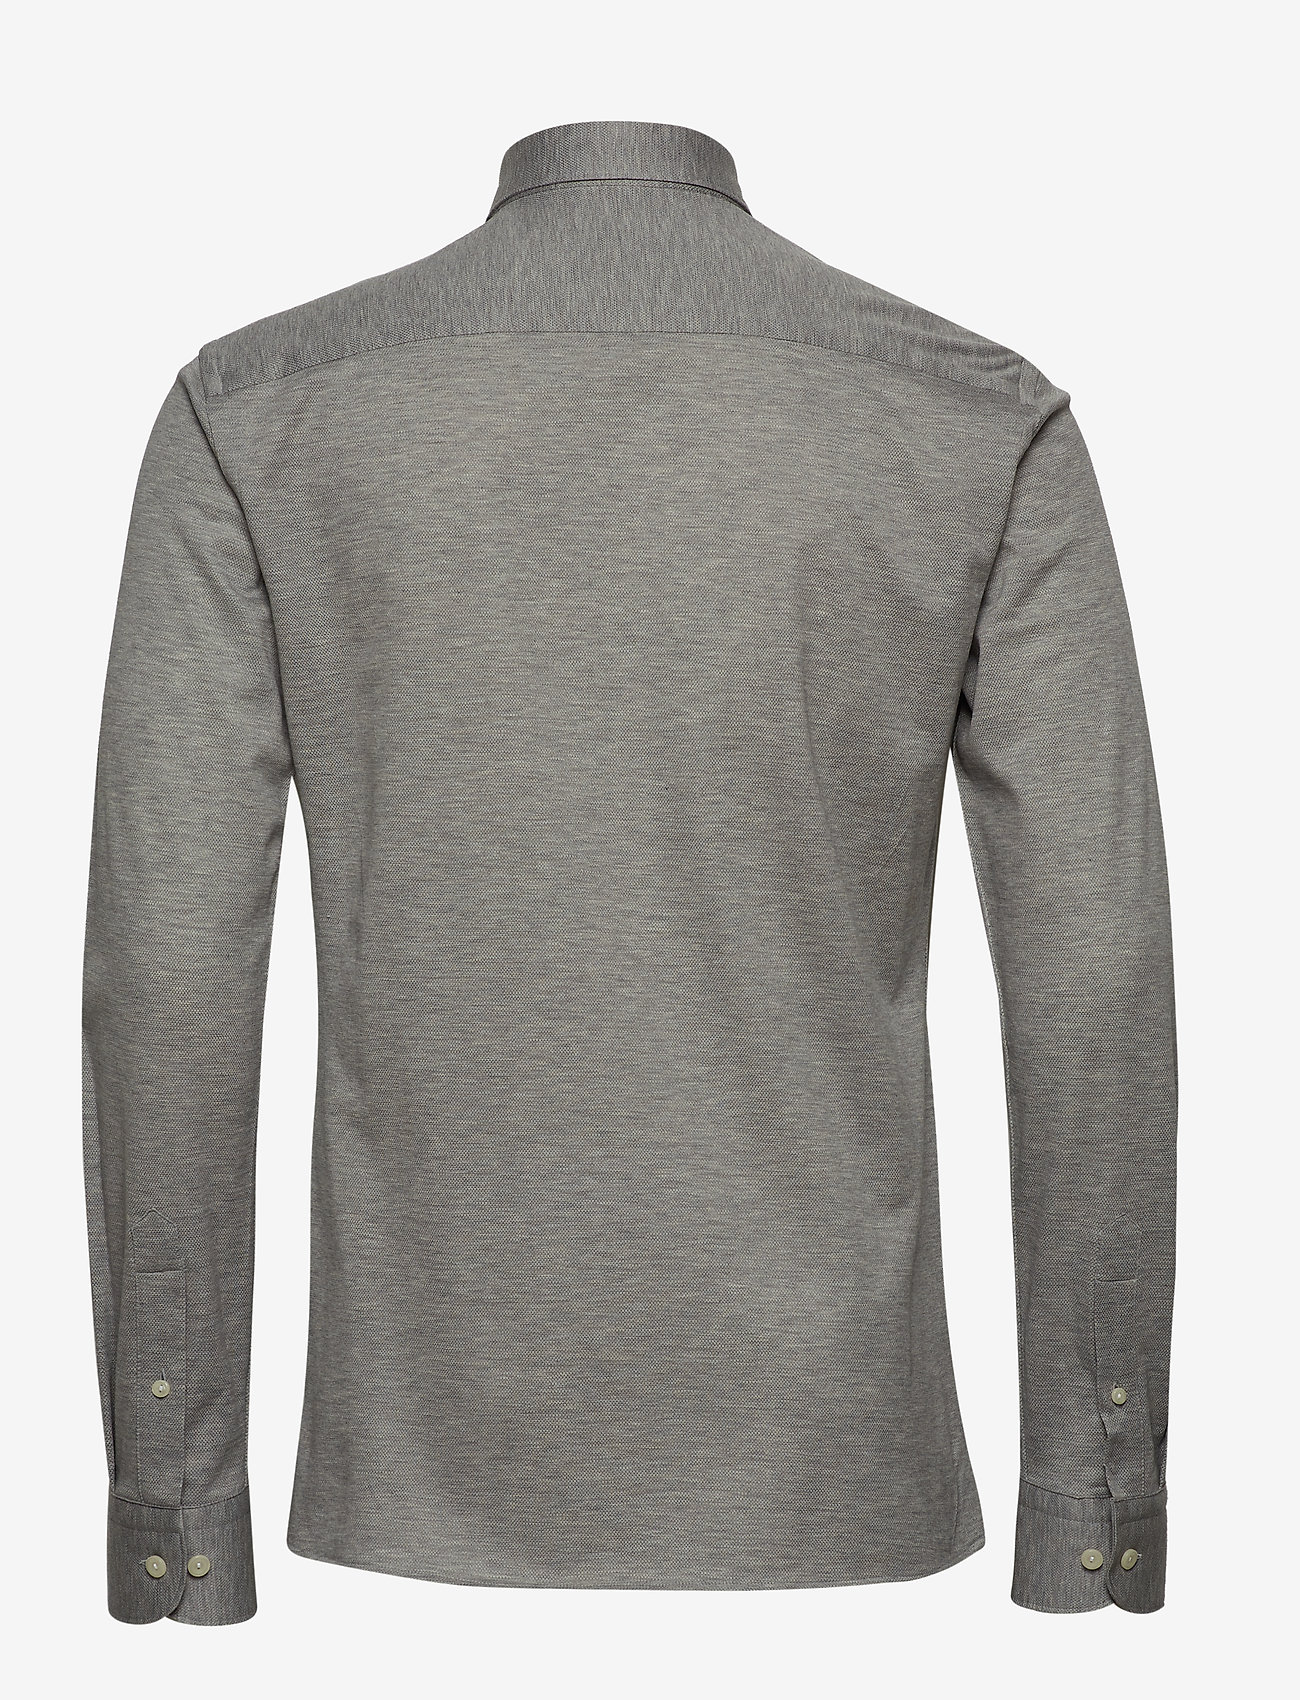 Eton Polo shirt - long sleeved - Skjorter GREY - Menn Klær